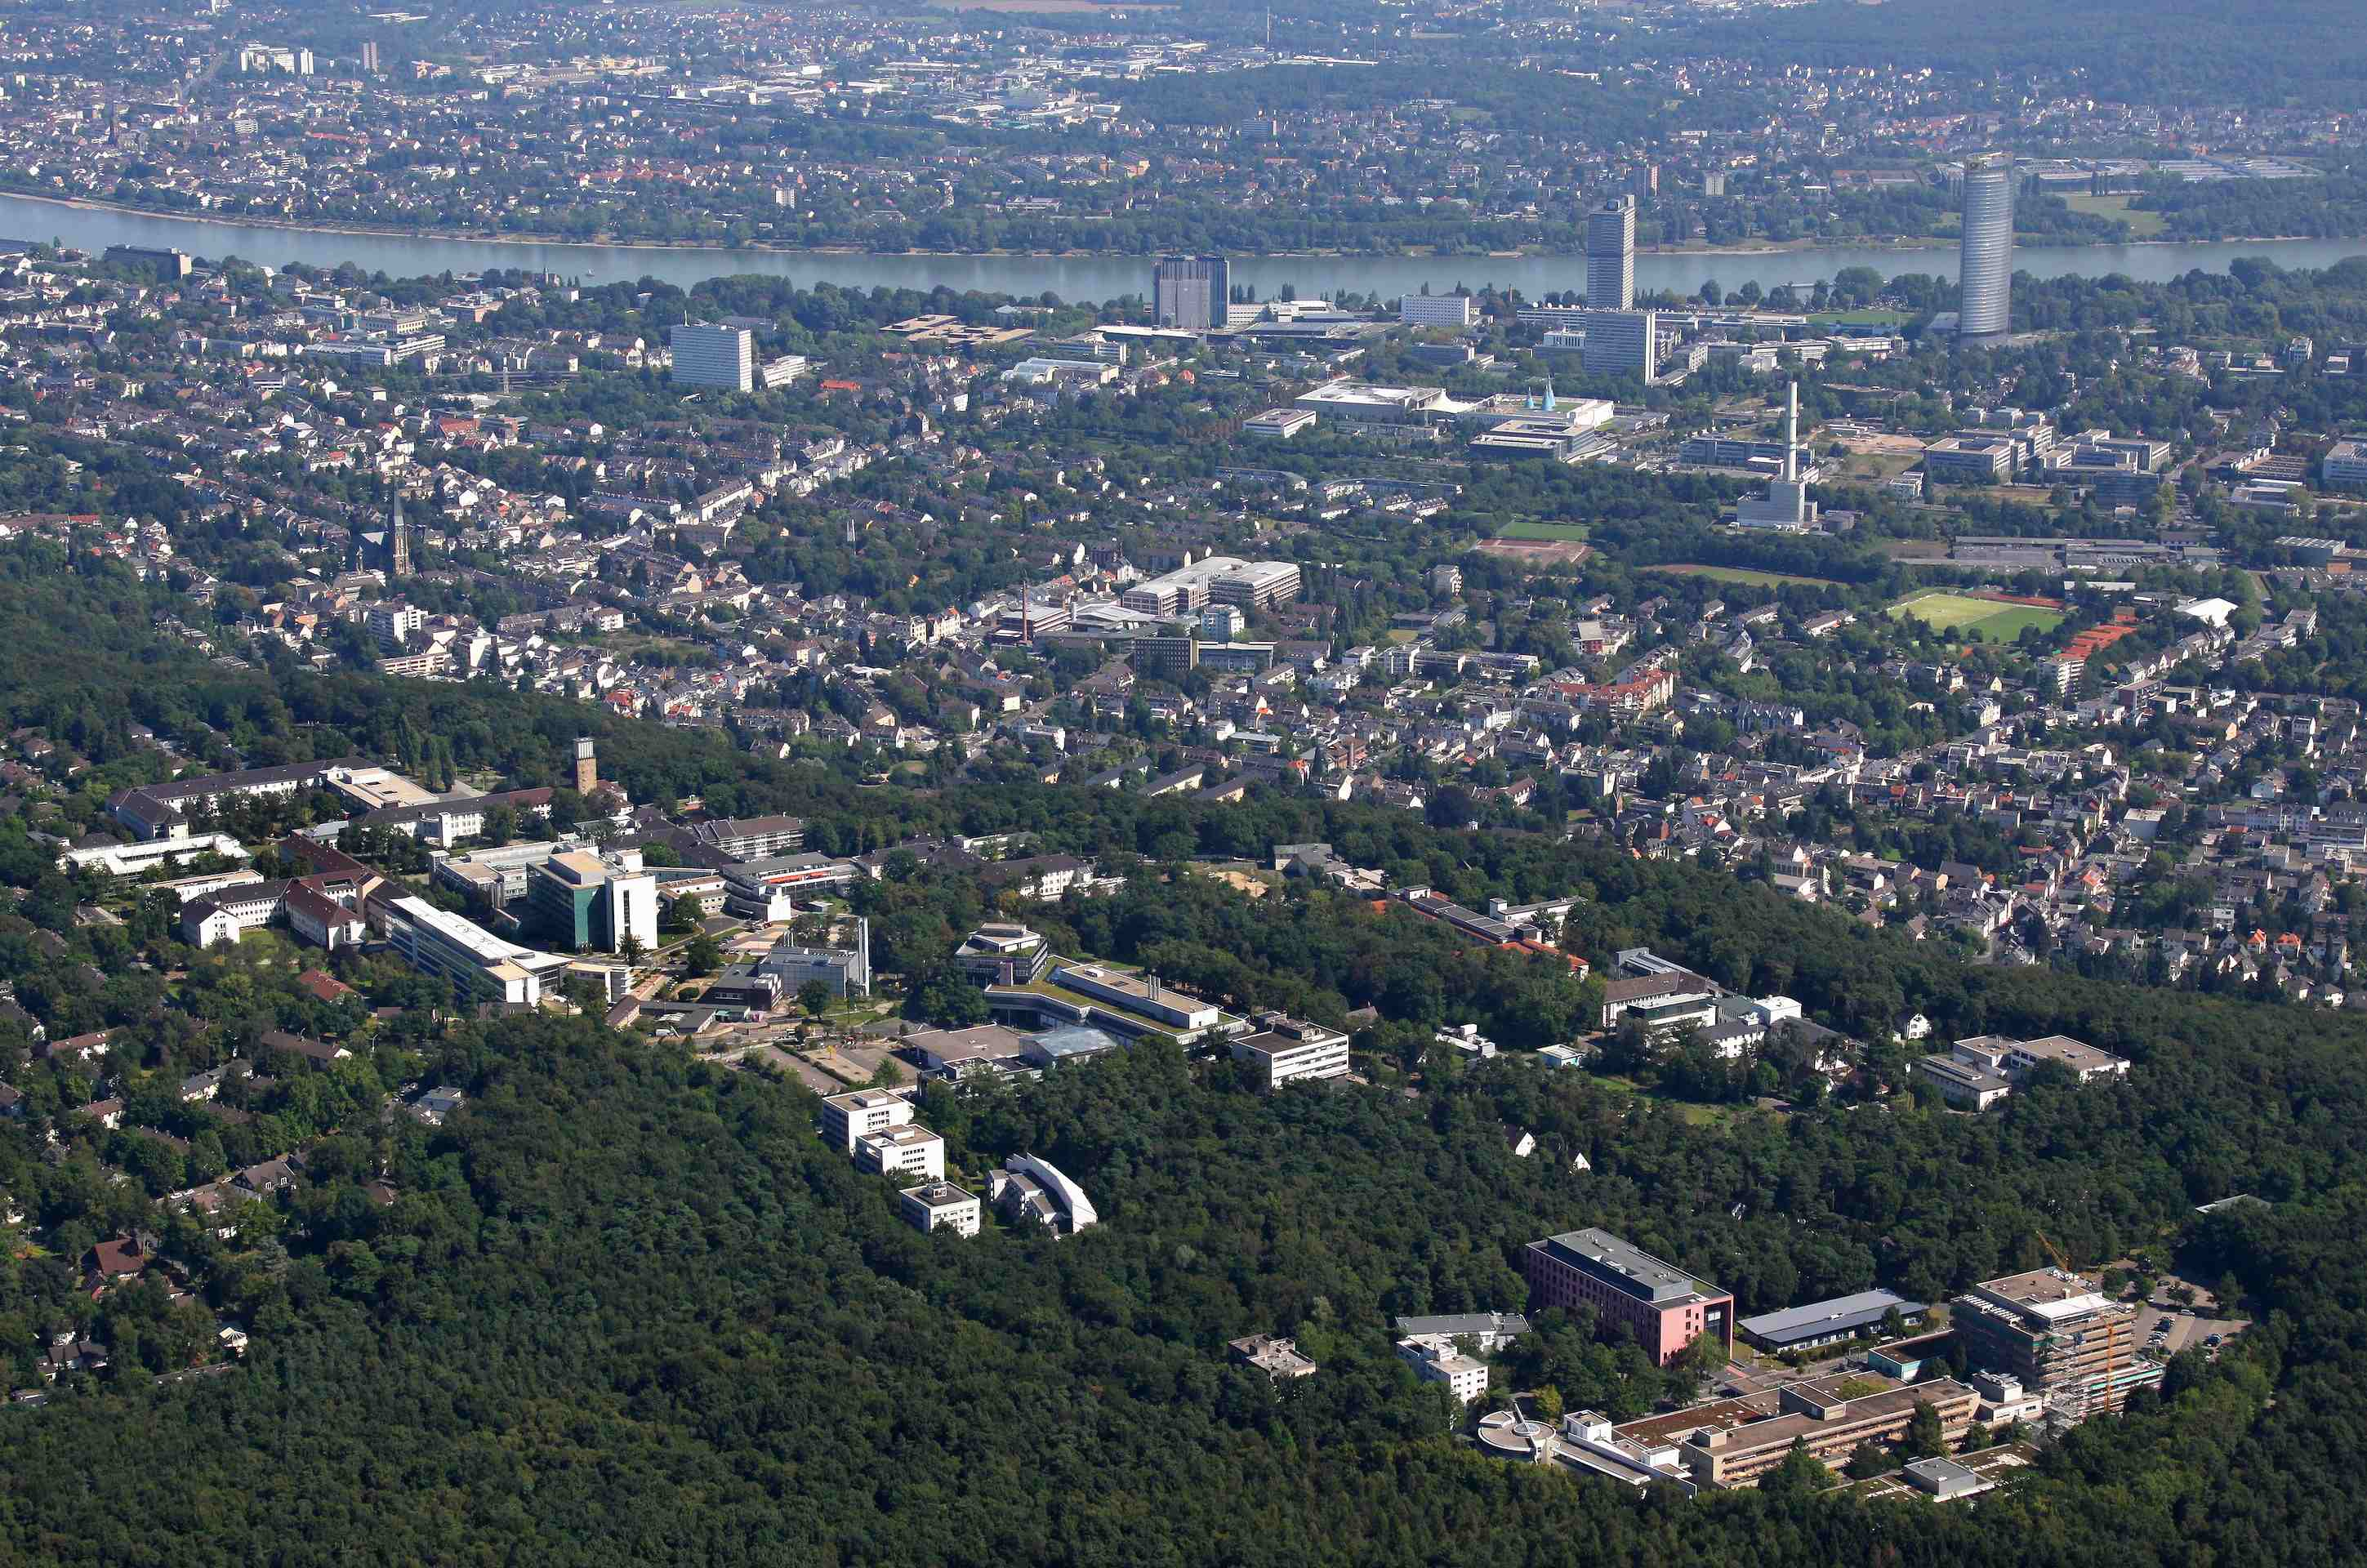 Aerial image of Bonn, Copyright: Peter Sondermann / University Bonn